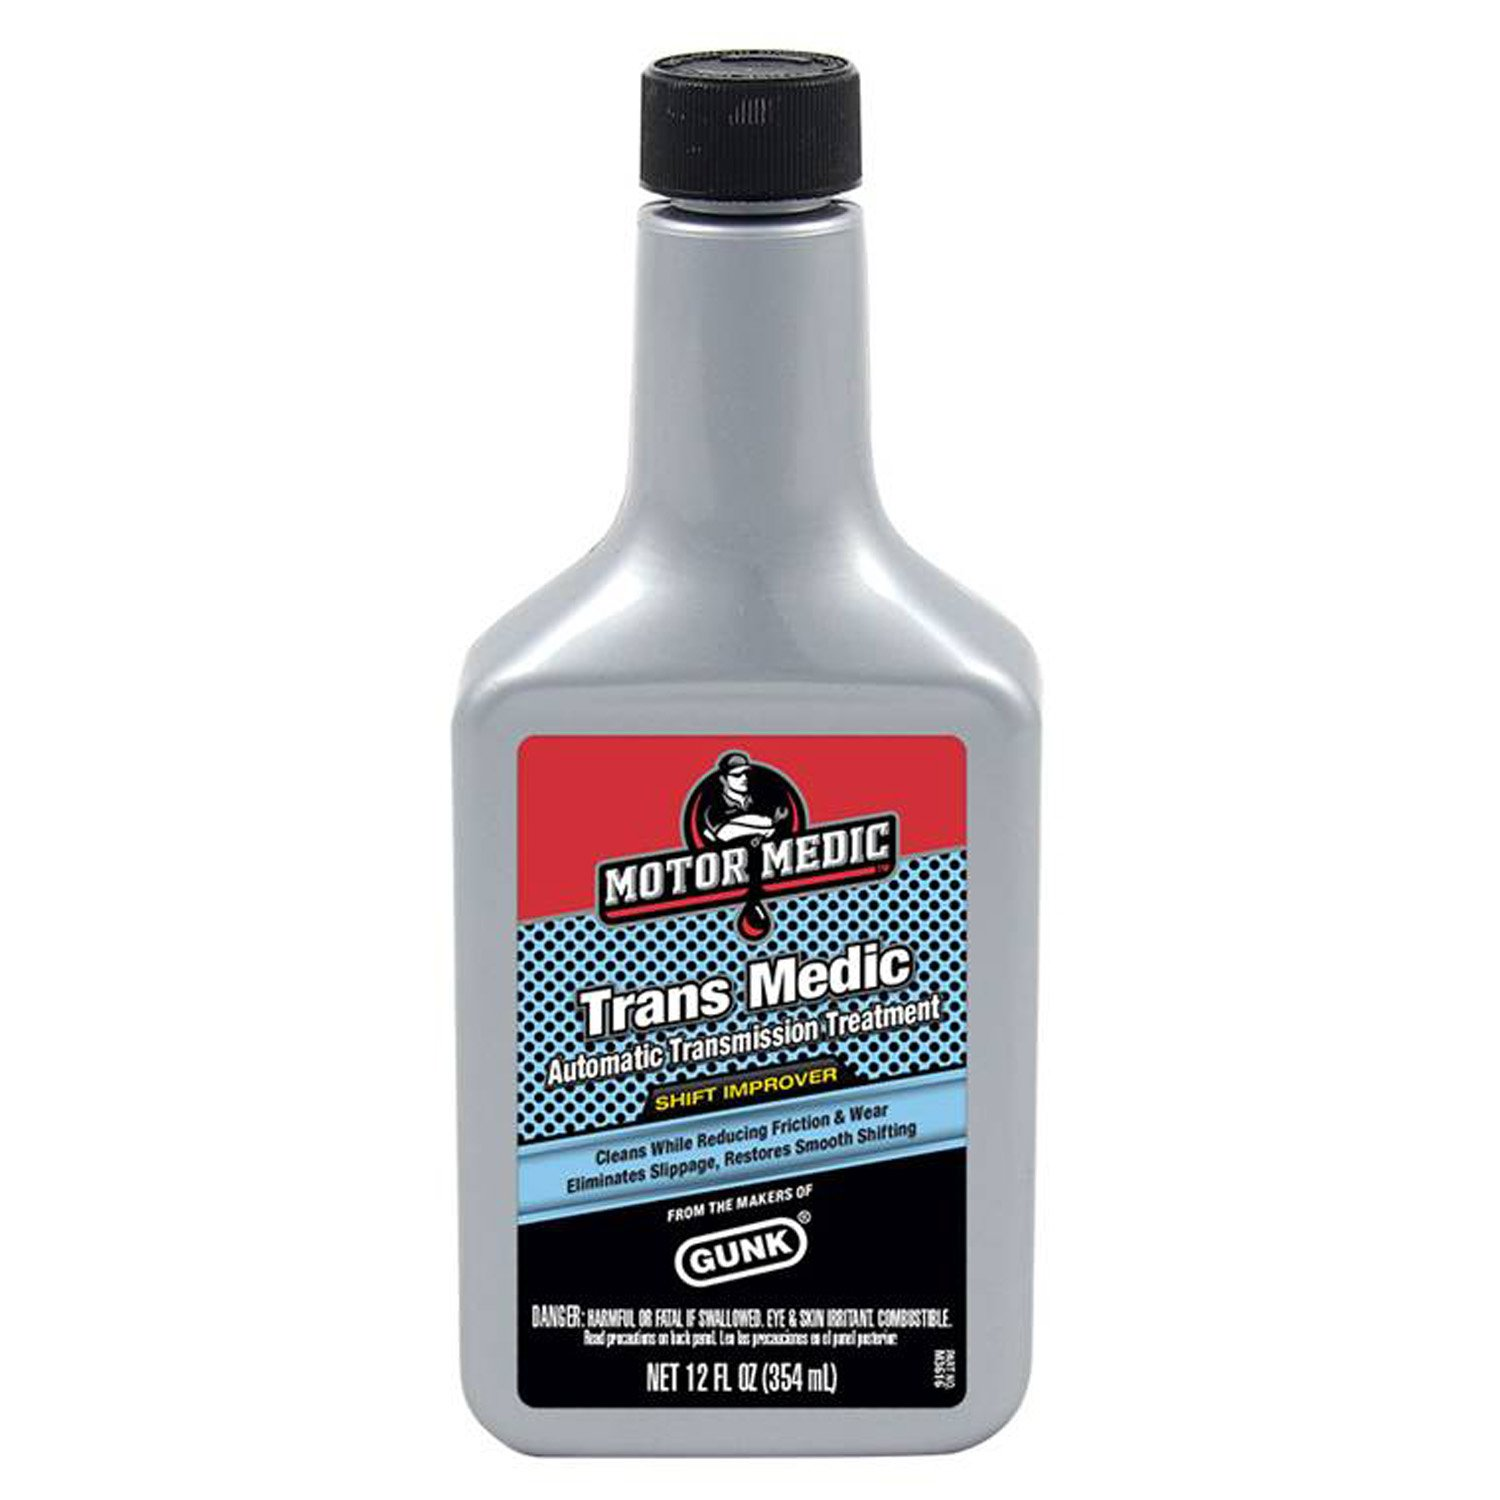 Amazon.com: Niteo Motor Medic M3616 Trans Medic Automatic Transmission  Treatment & Shift Improver - 12 oz.: Automotive